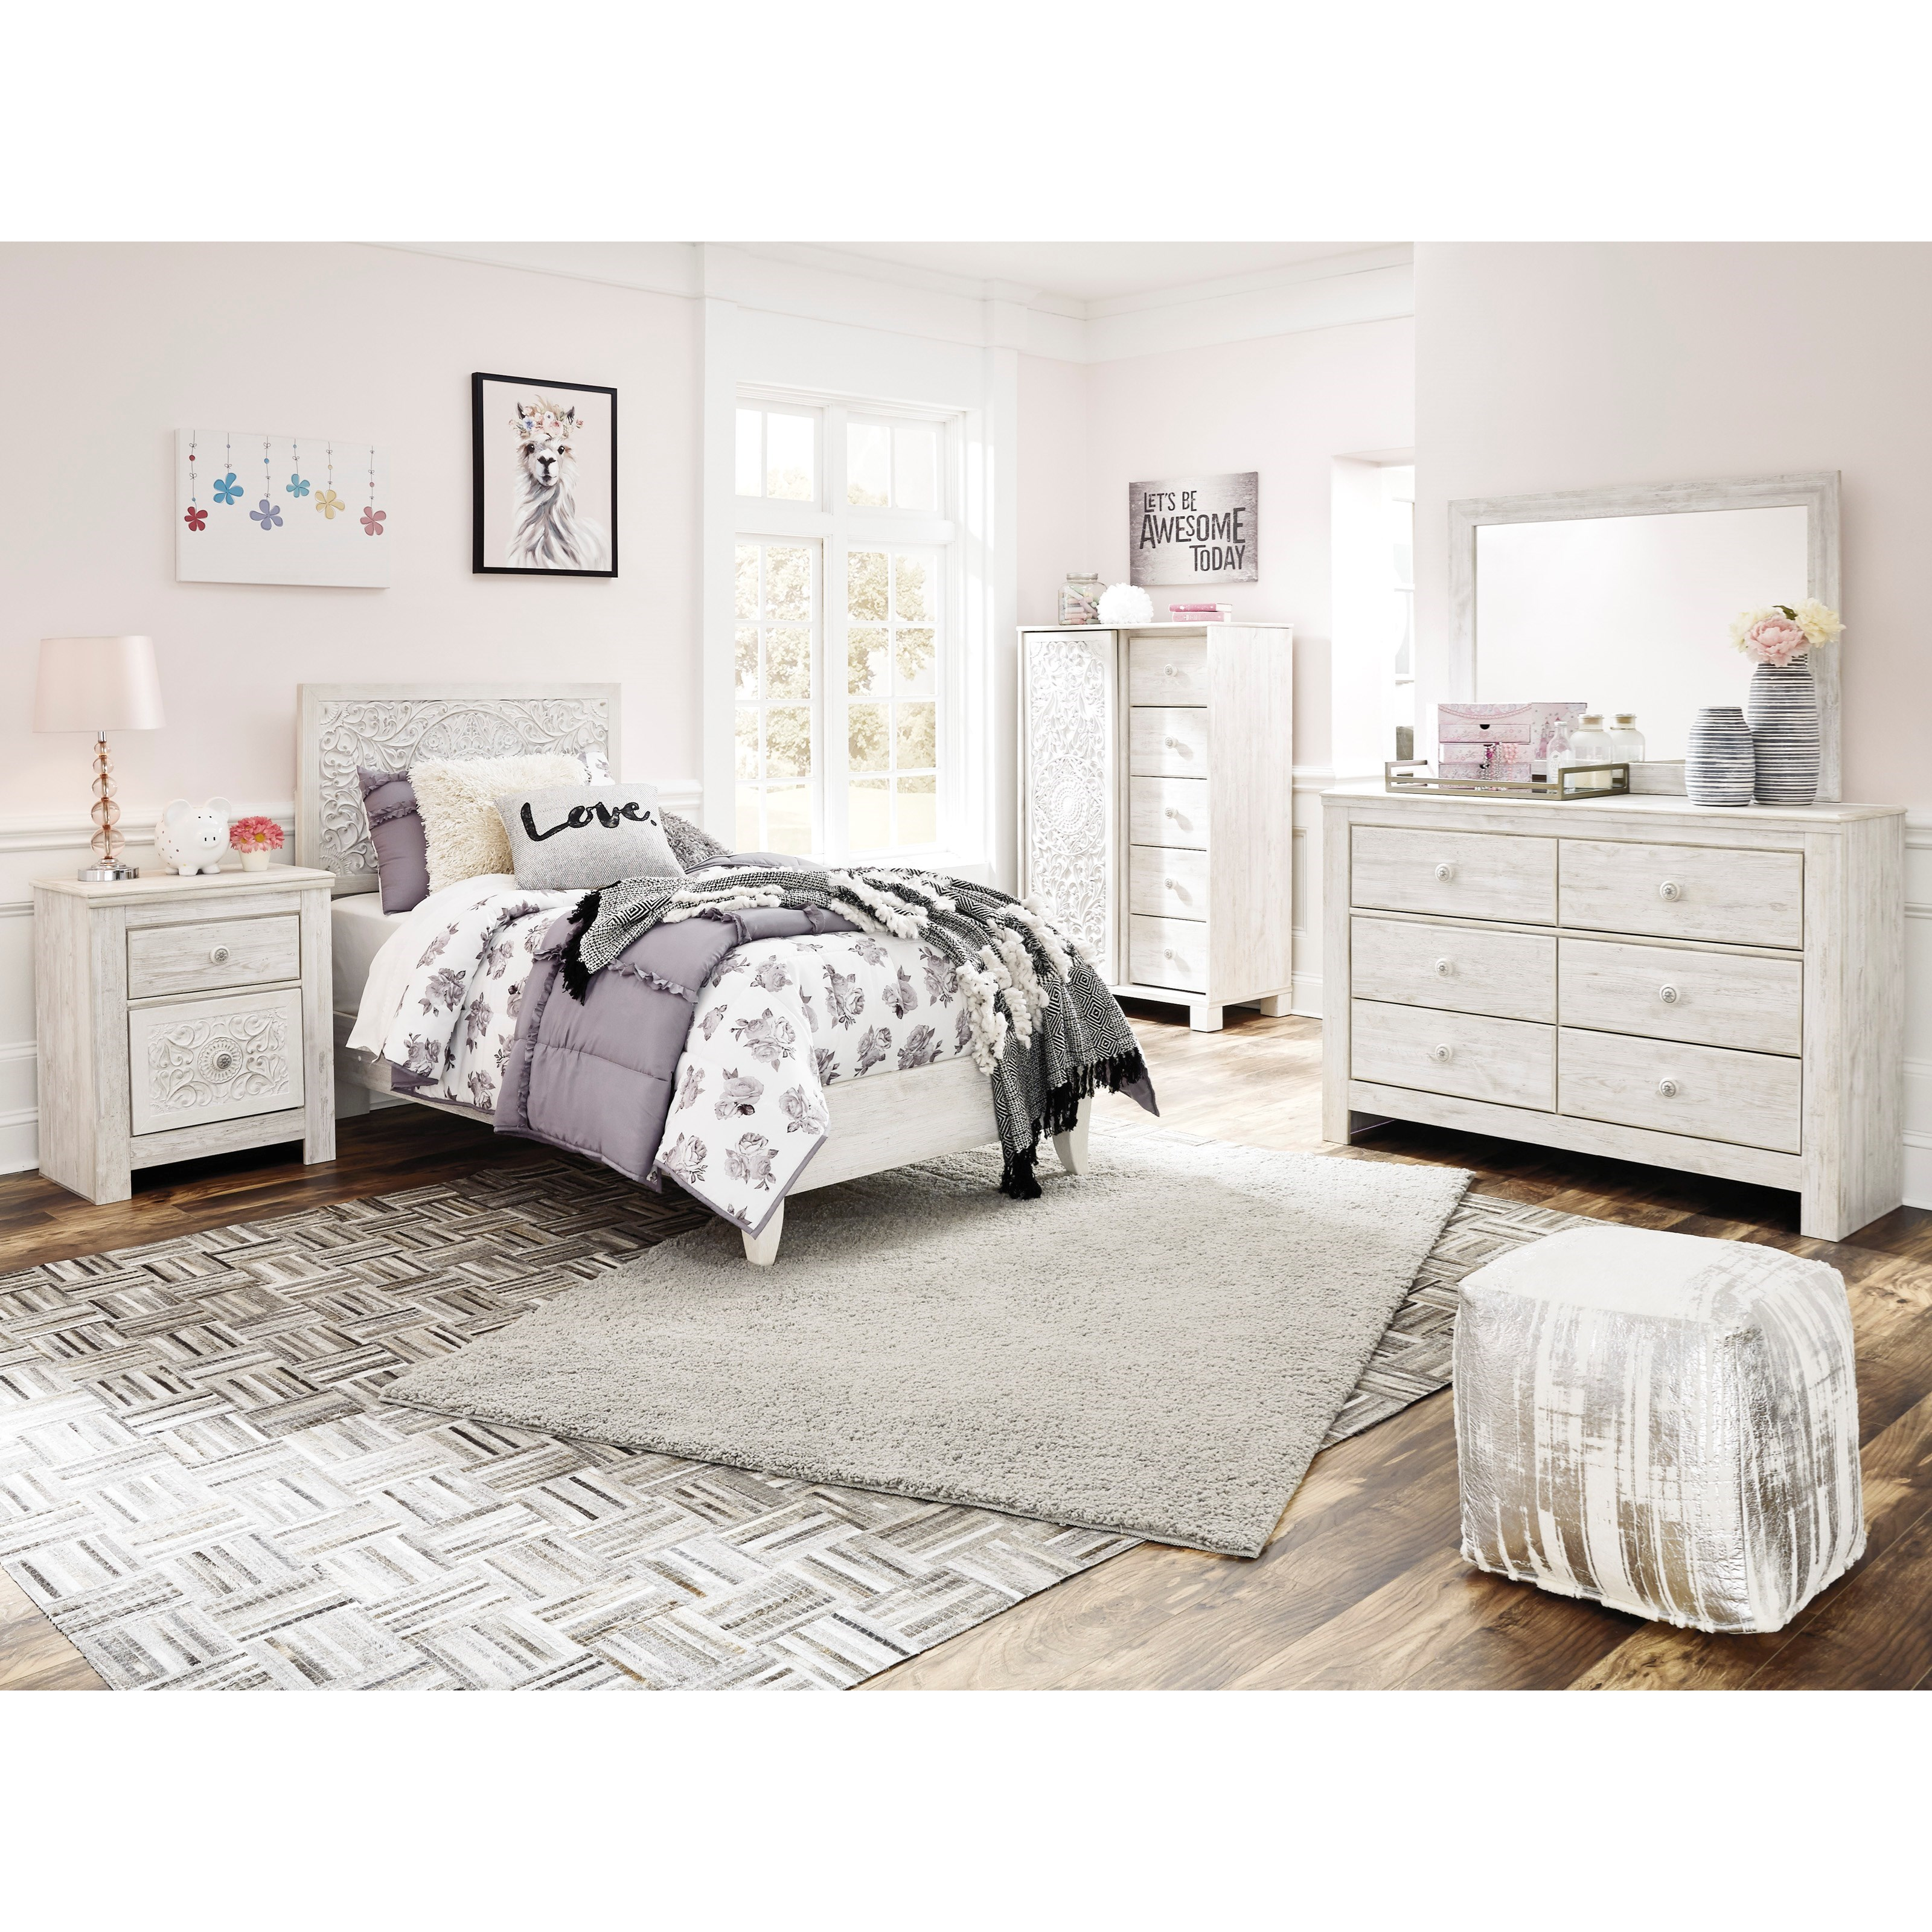 Paxberry Twin Bedroom Group by Ashley Signature Design at Rooms and Rest